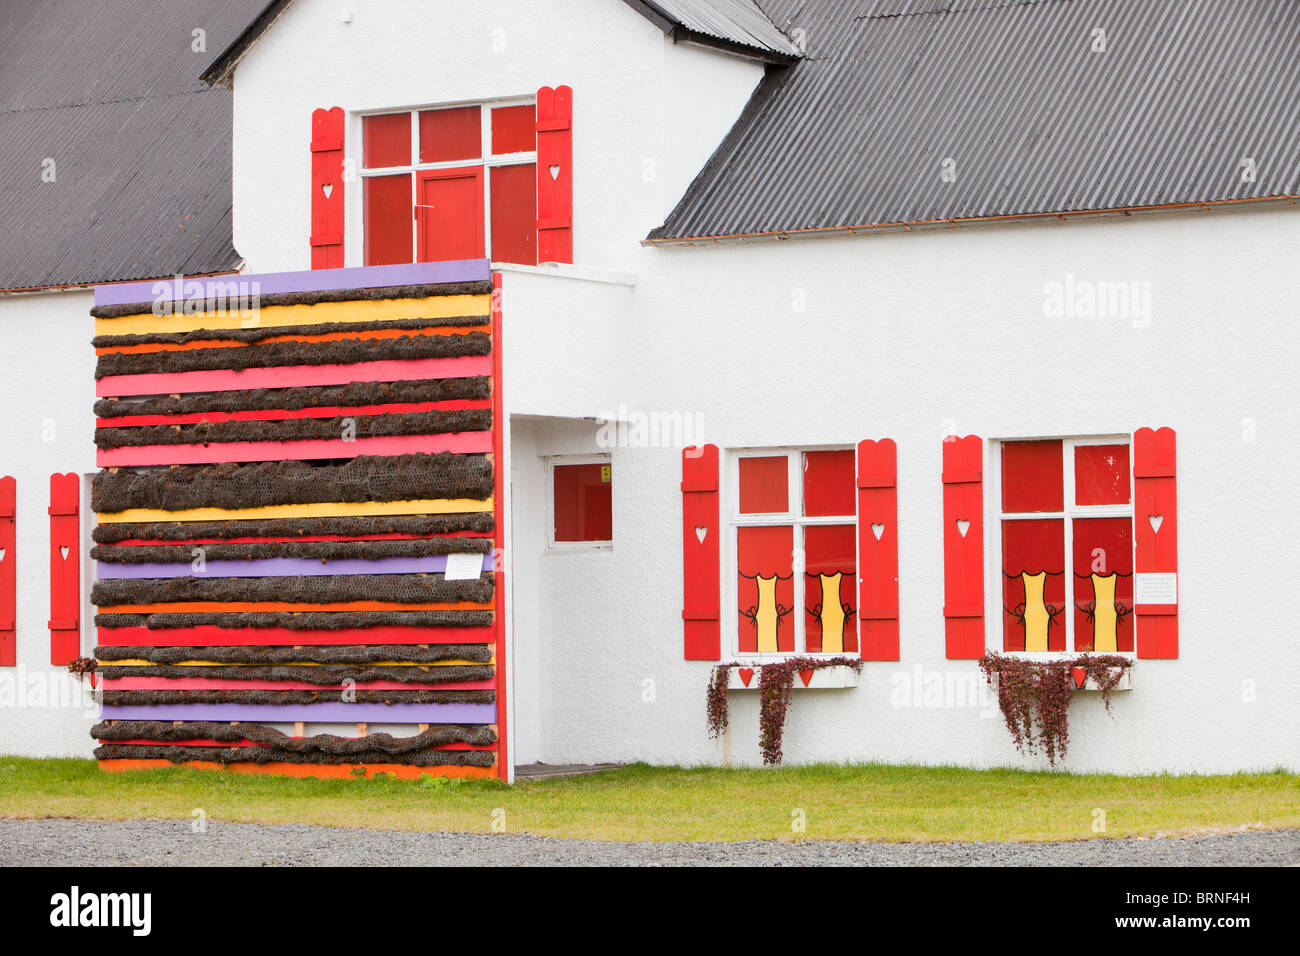 A childrens nursery in Hveragerdi in South West Iceland - Stock Image